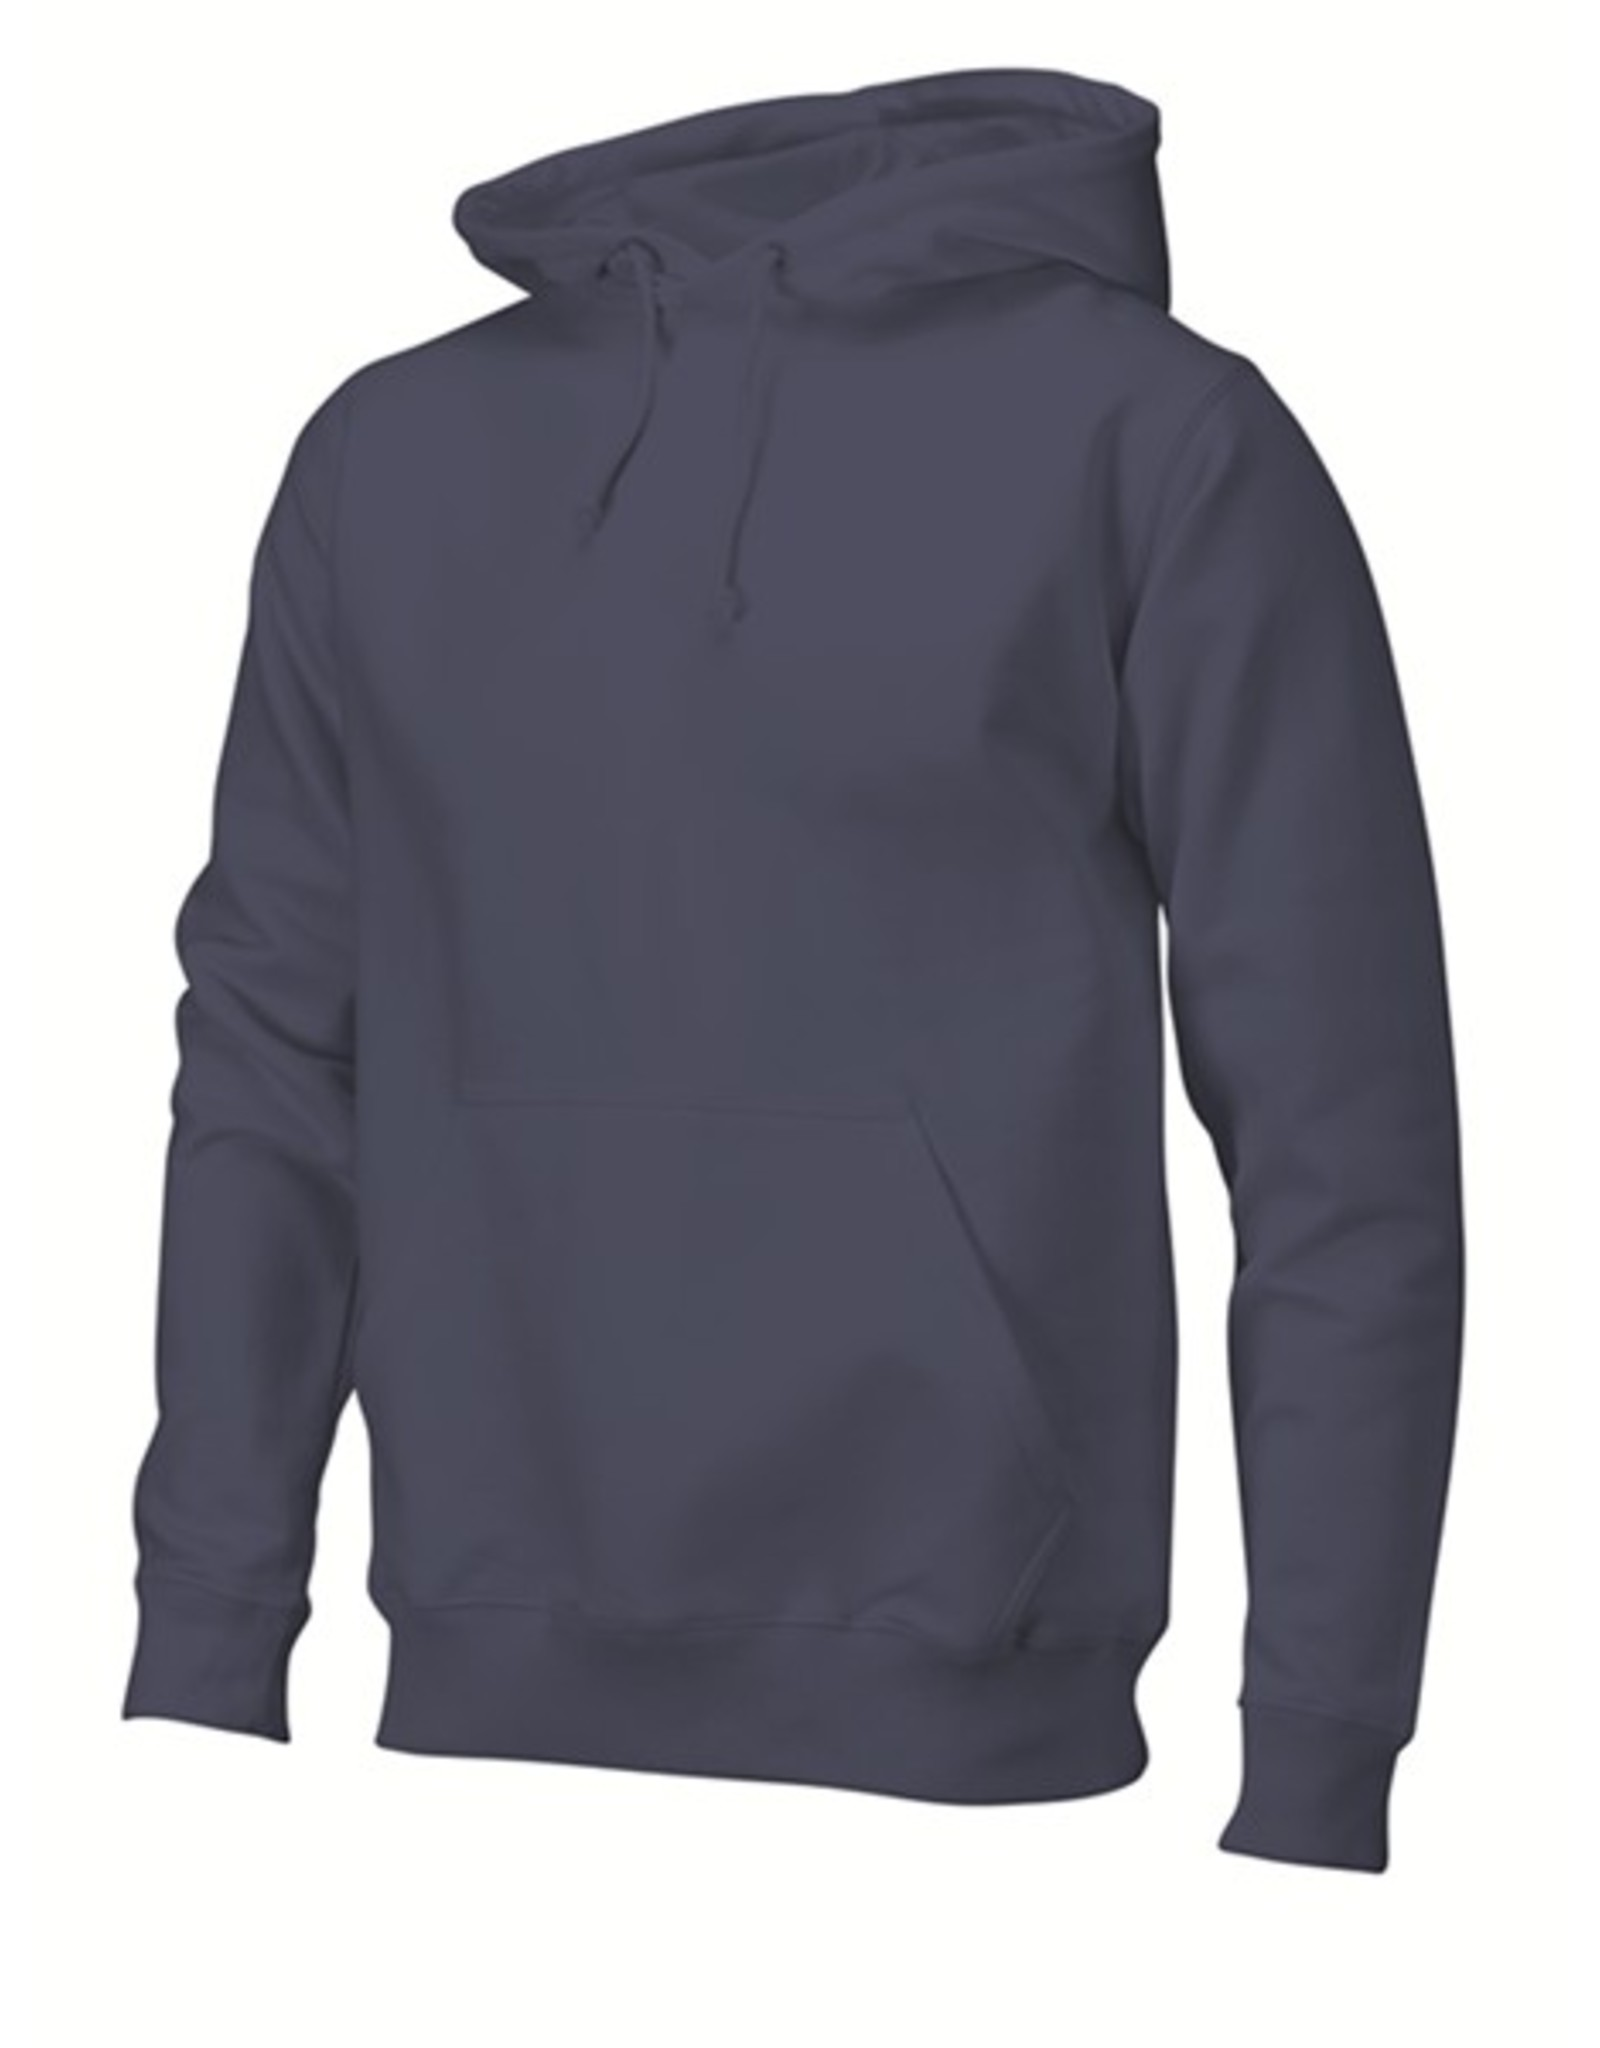 Tricorp Hooded sweater HS300 insignia